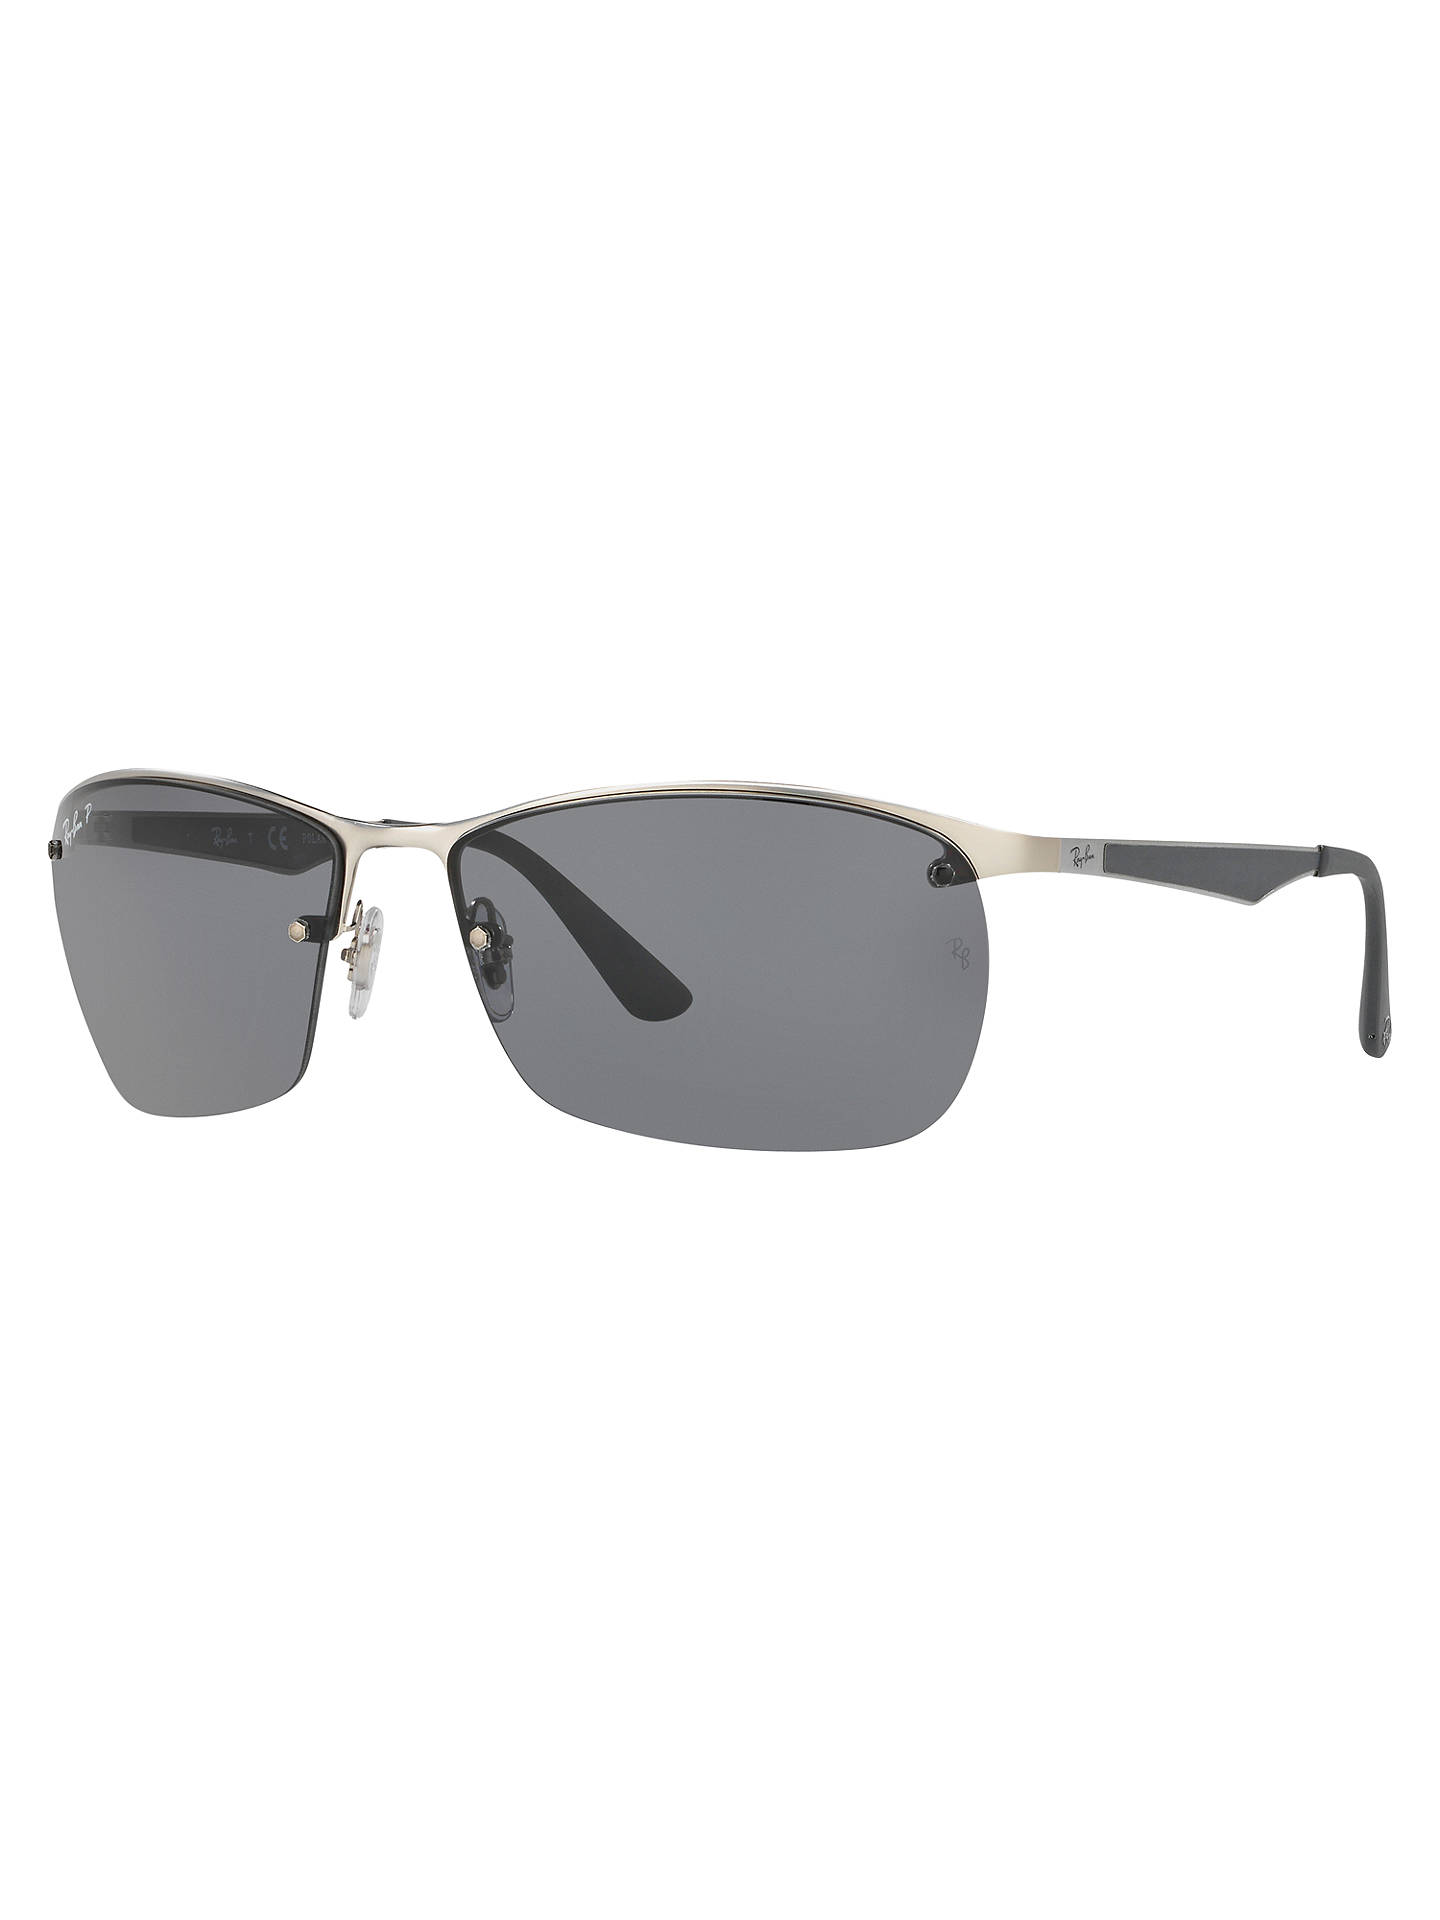 Buy Ray-Ban RB3550 Polarised Rectangular Sunglasses, Grey/Silver Online at johnlewis.com